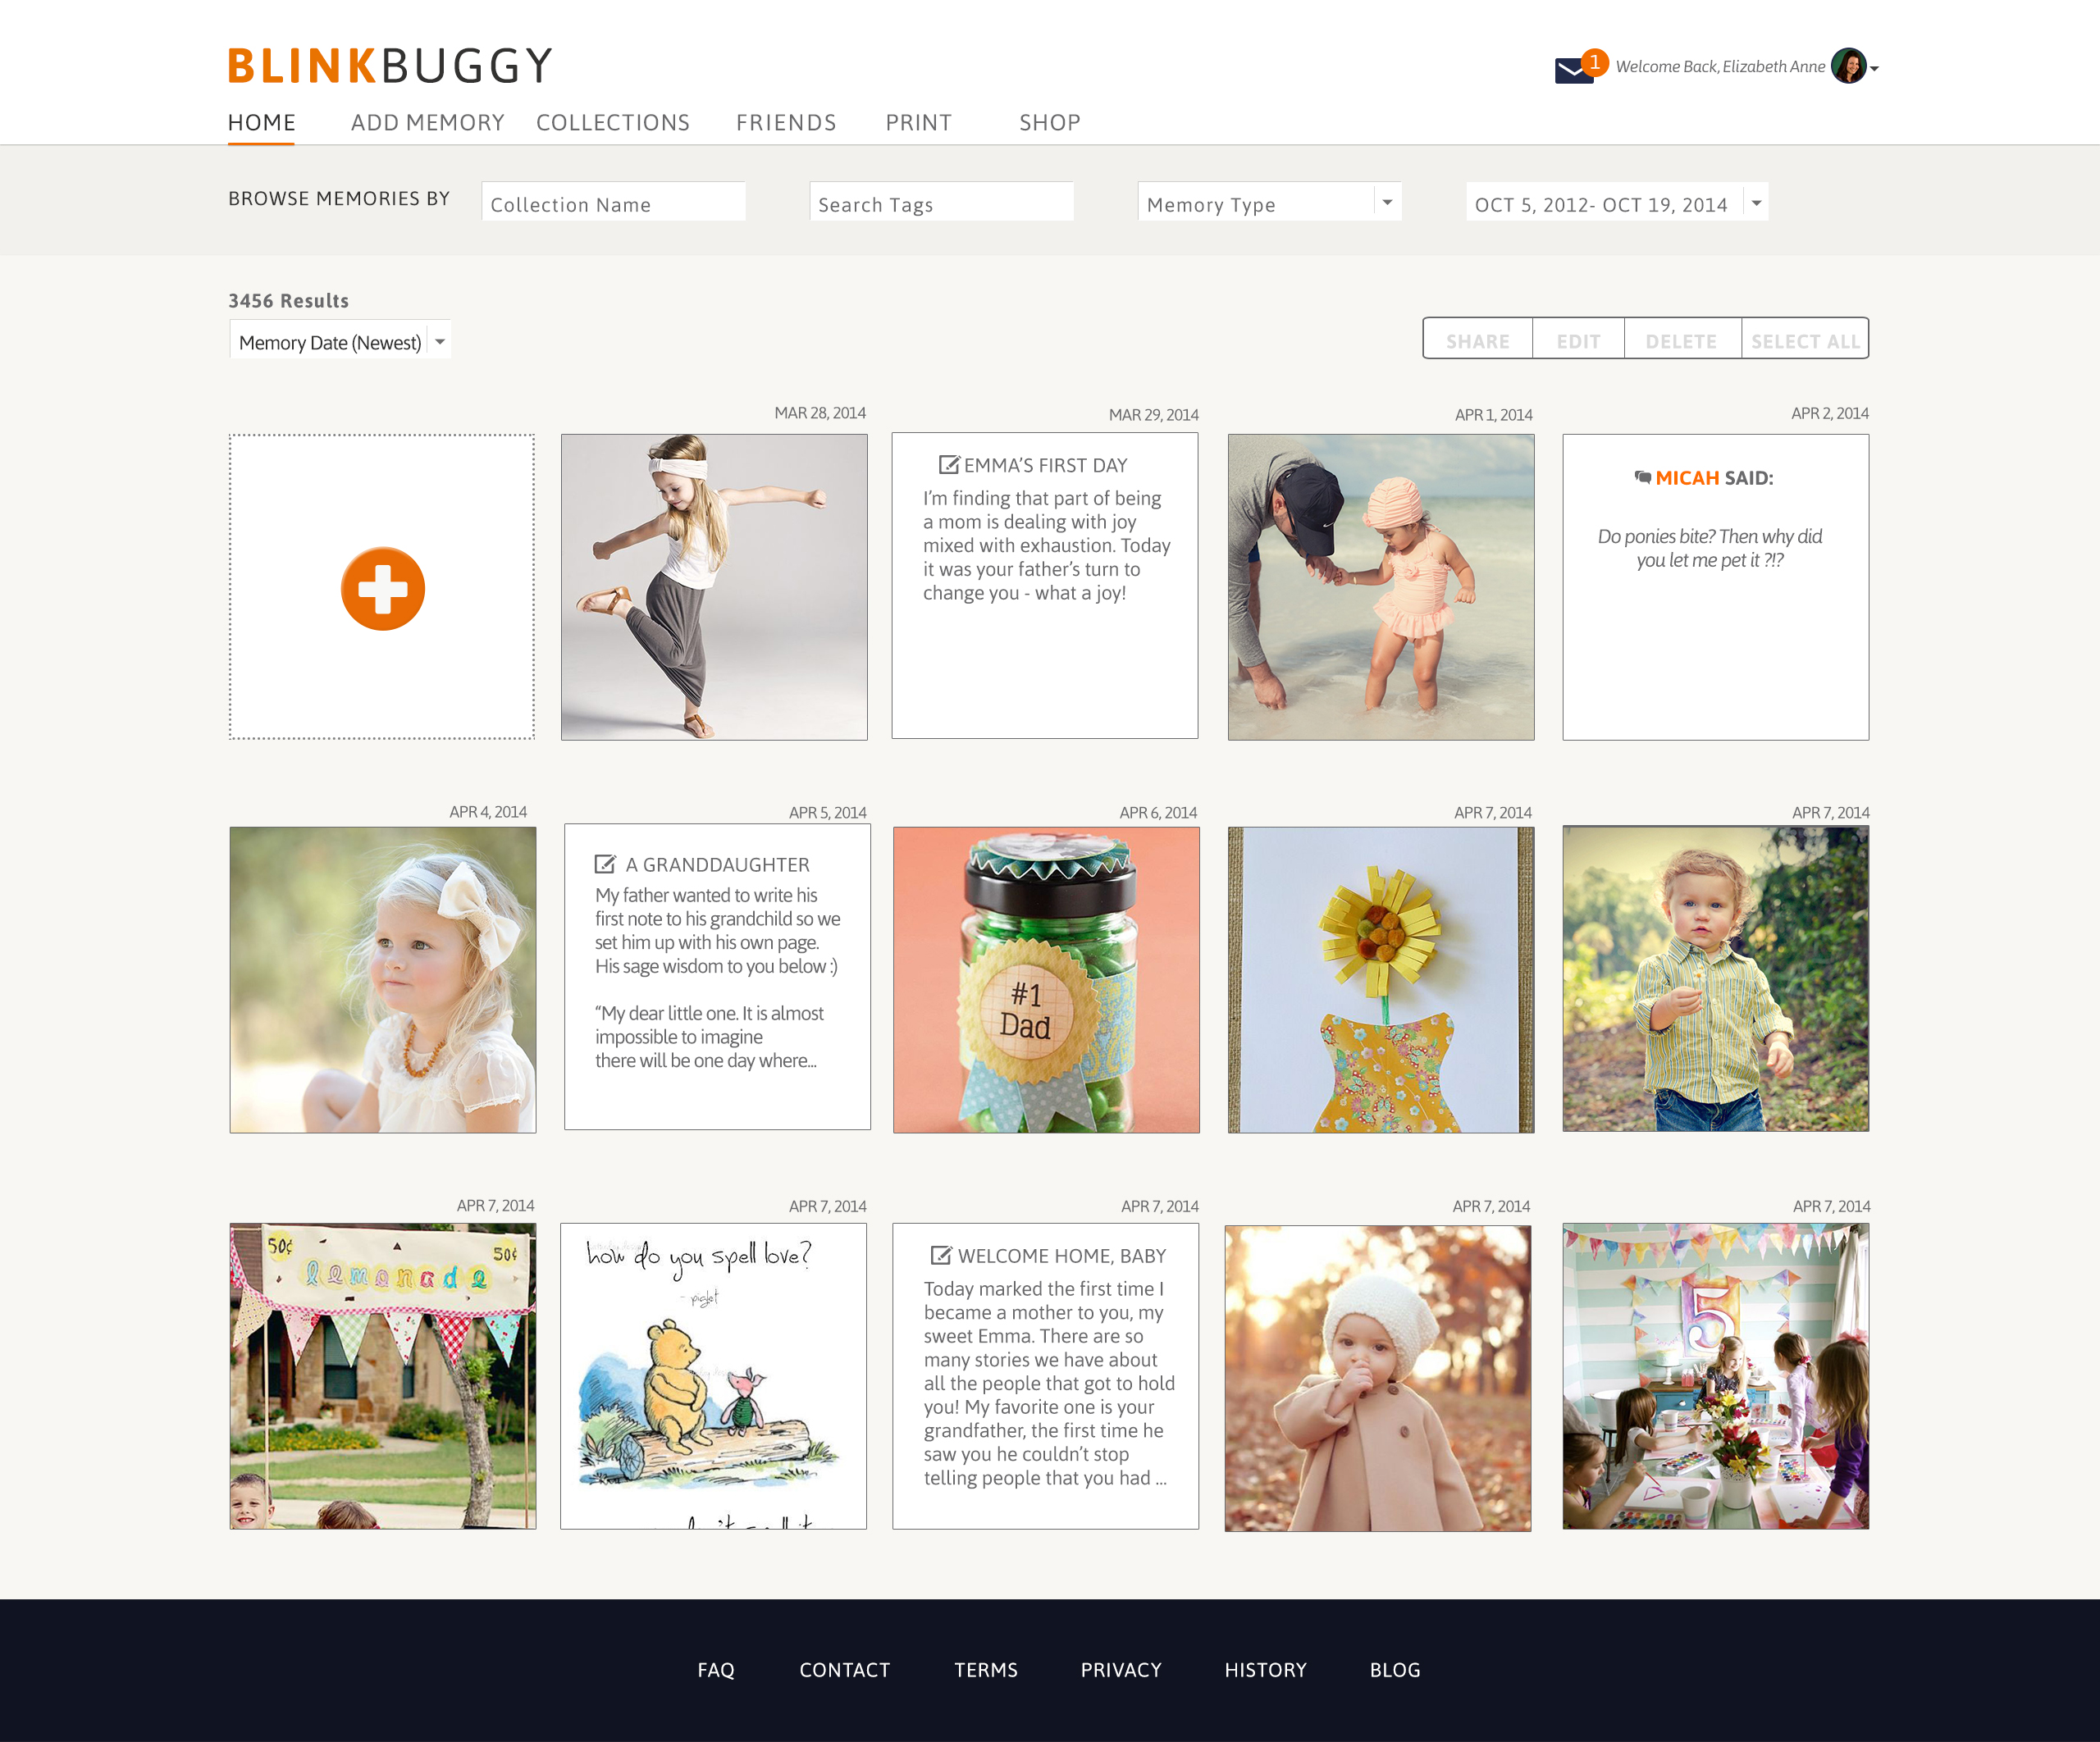 Blinkbuggy_home